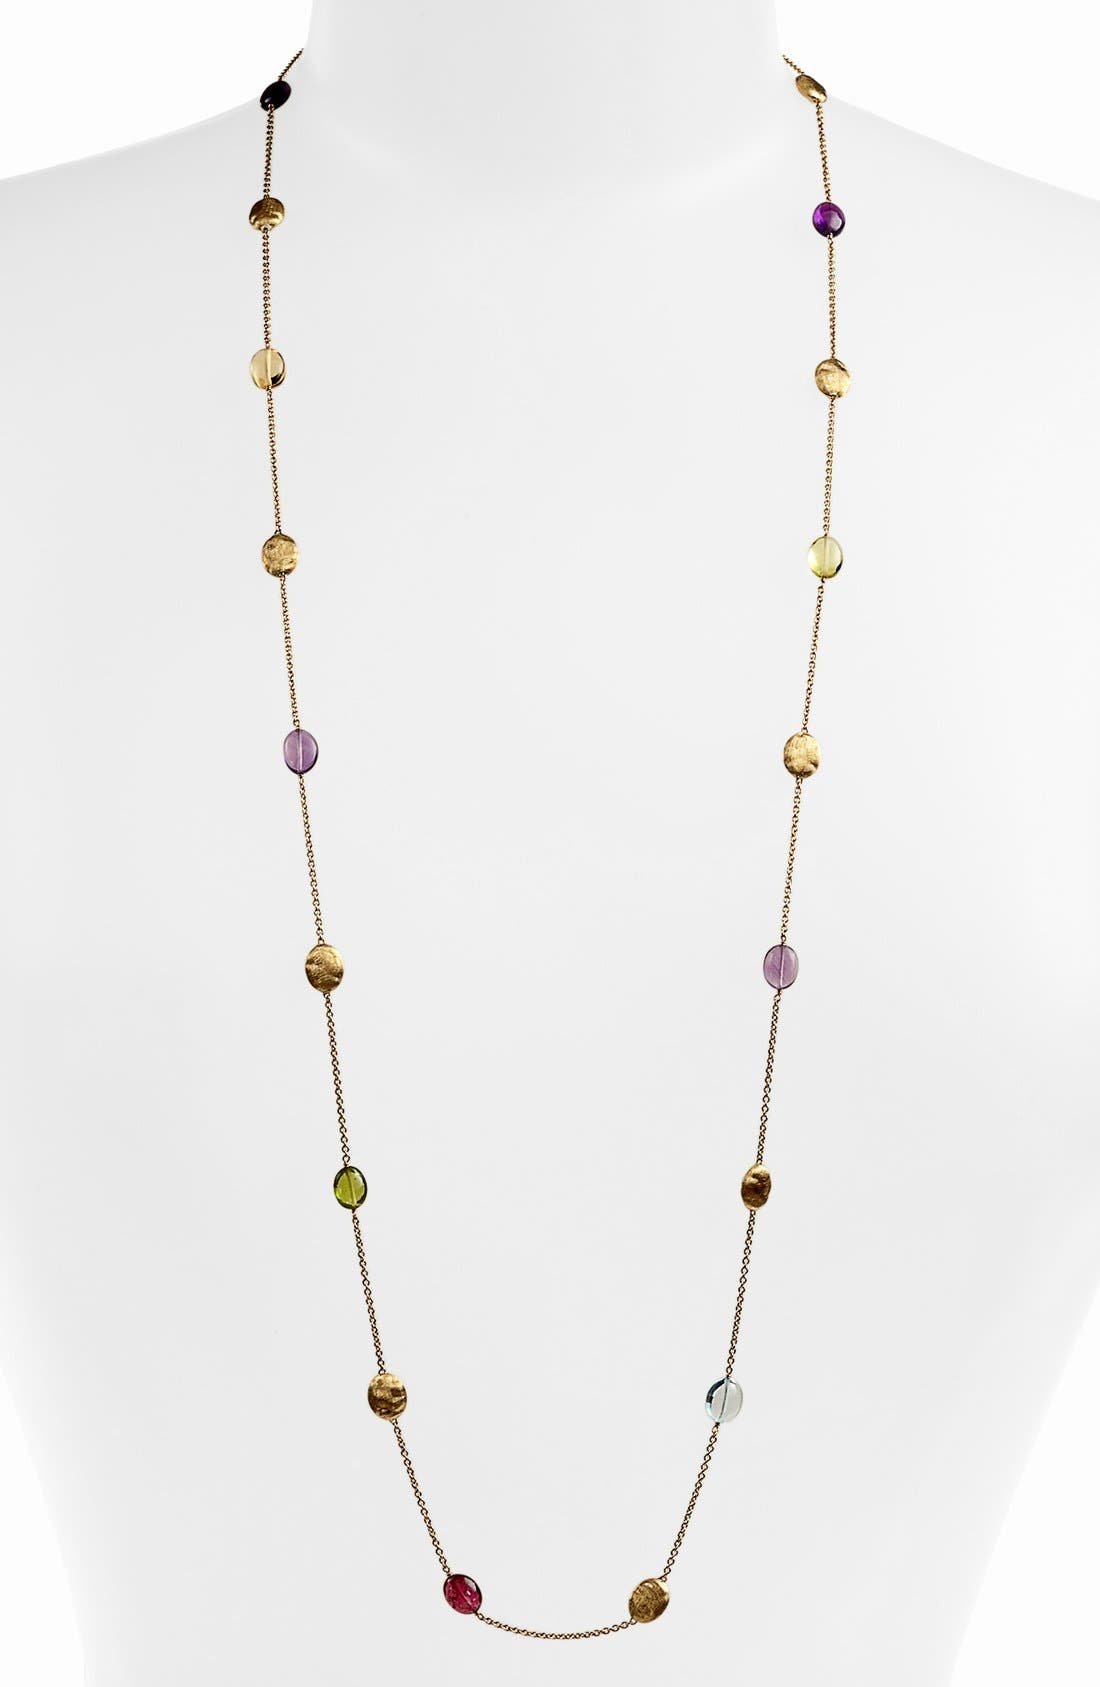 Main Image - Marco Bicego 'Siviglia' Long Semiprecious Station Necklace